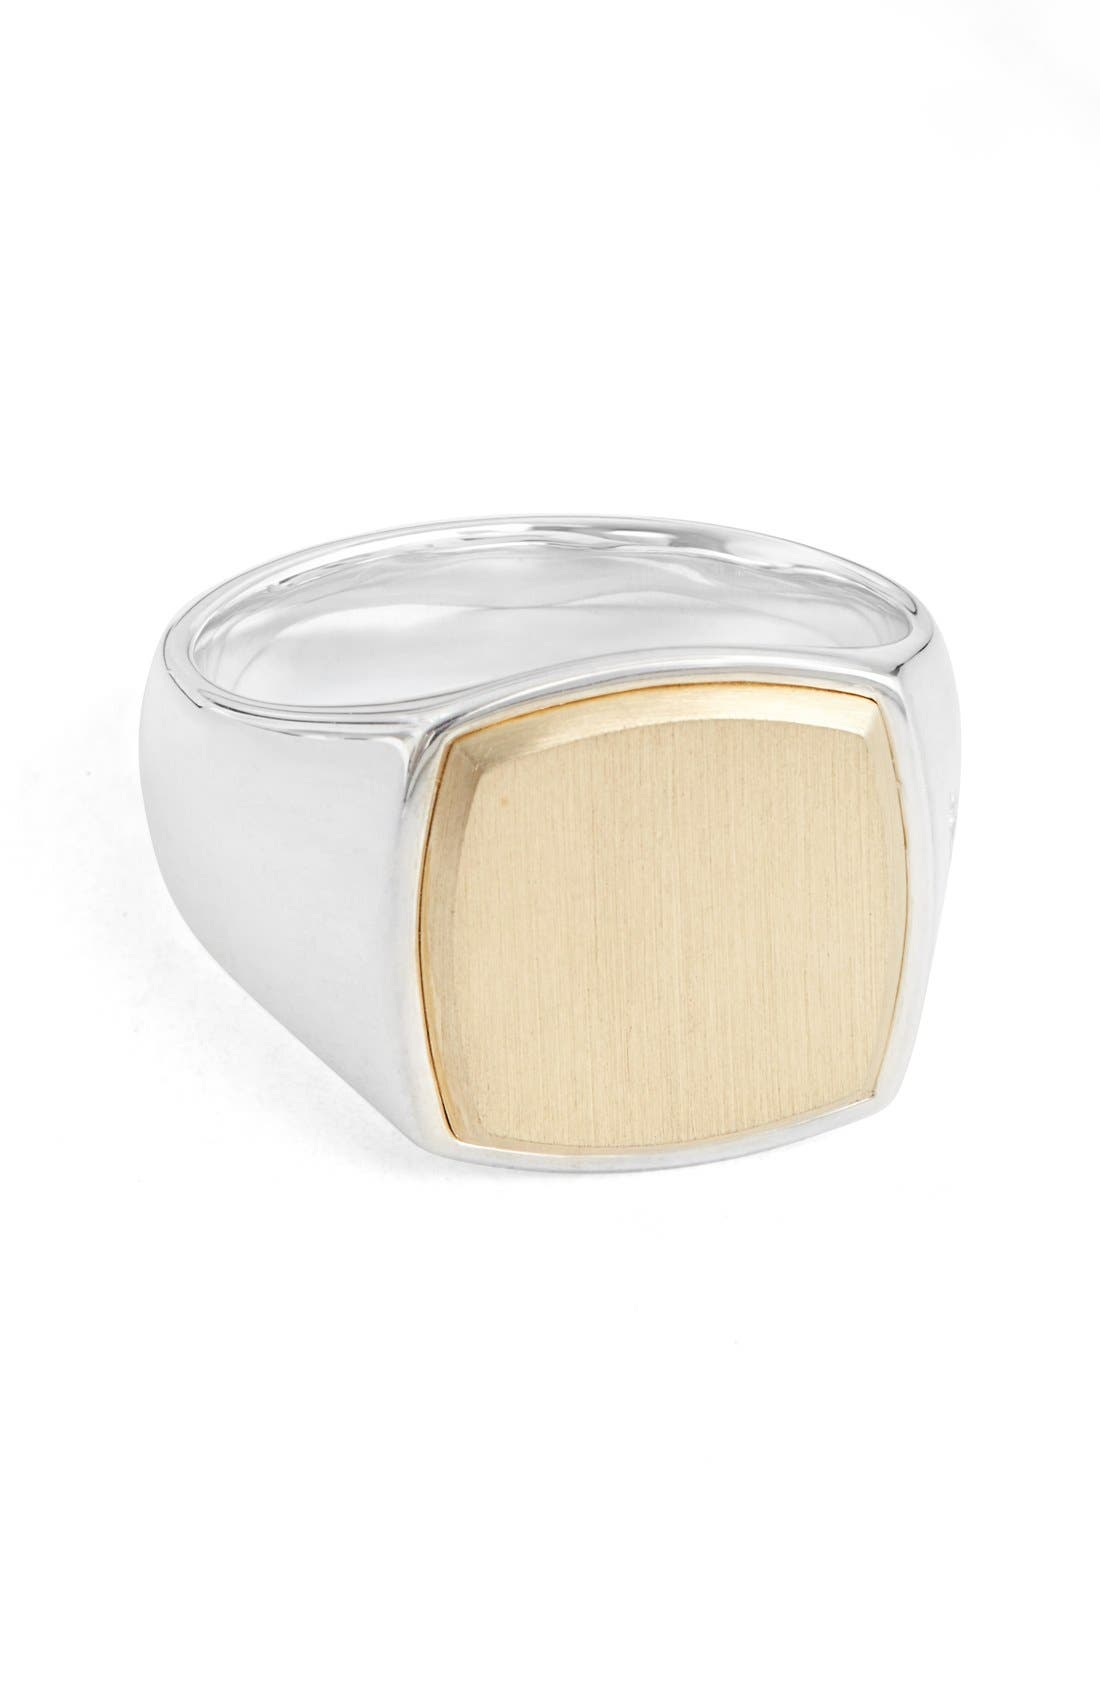 Tom Wood 'Patriot Collection' Cushion Gold Top Signet Ring